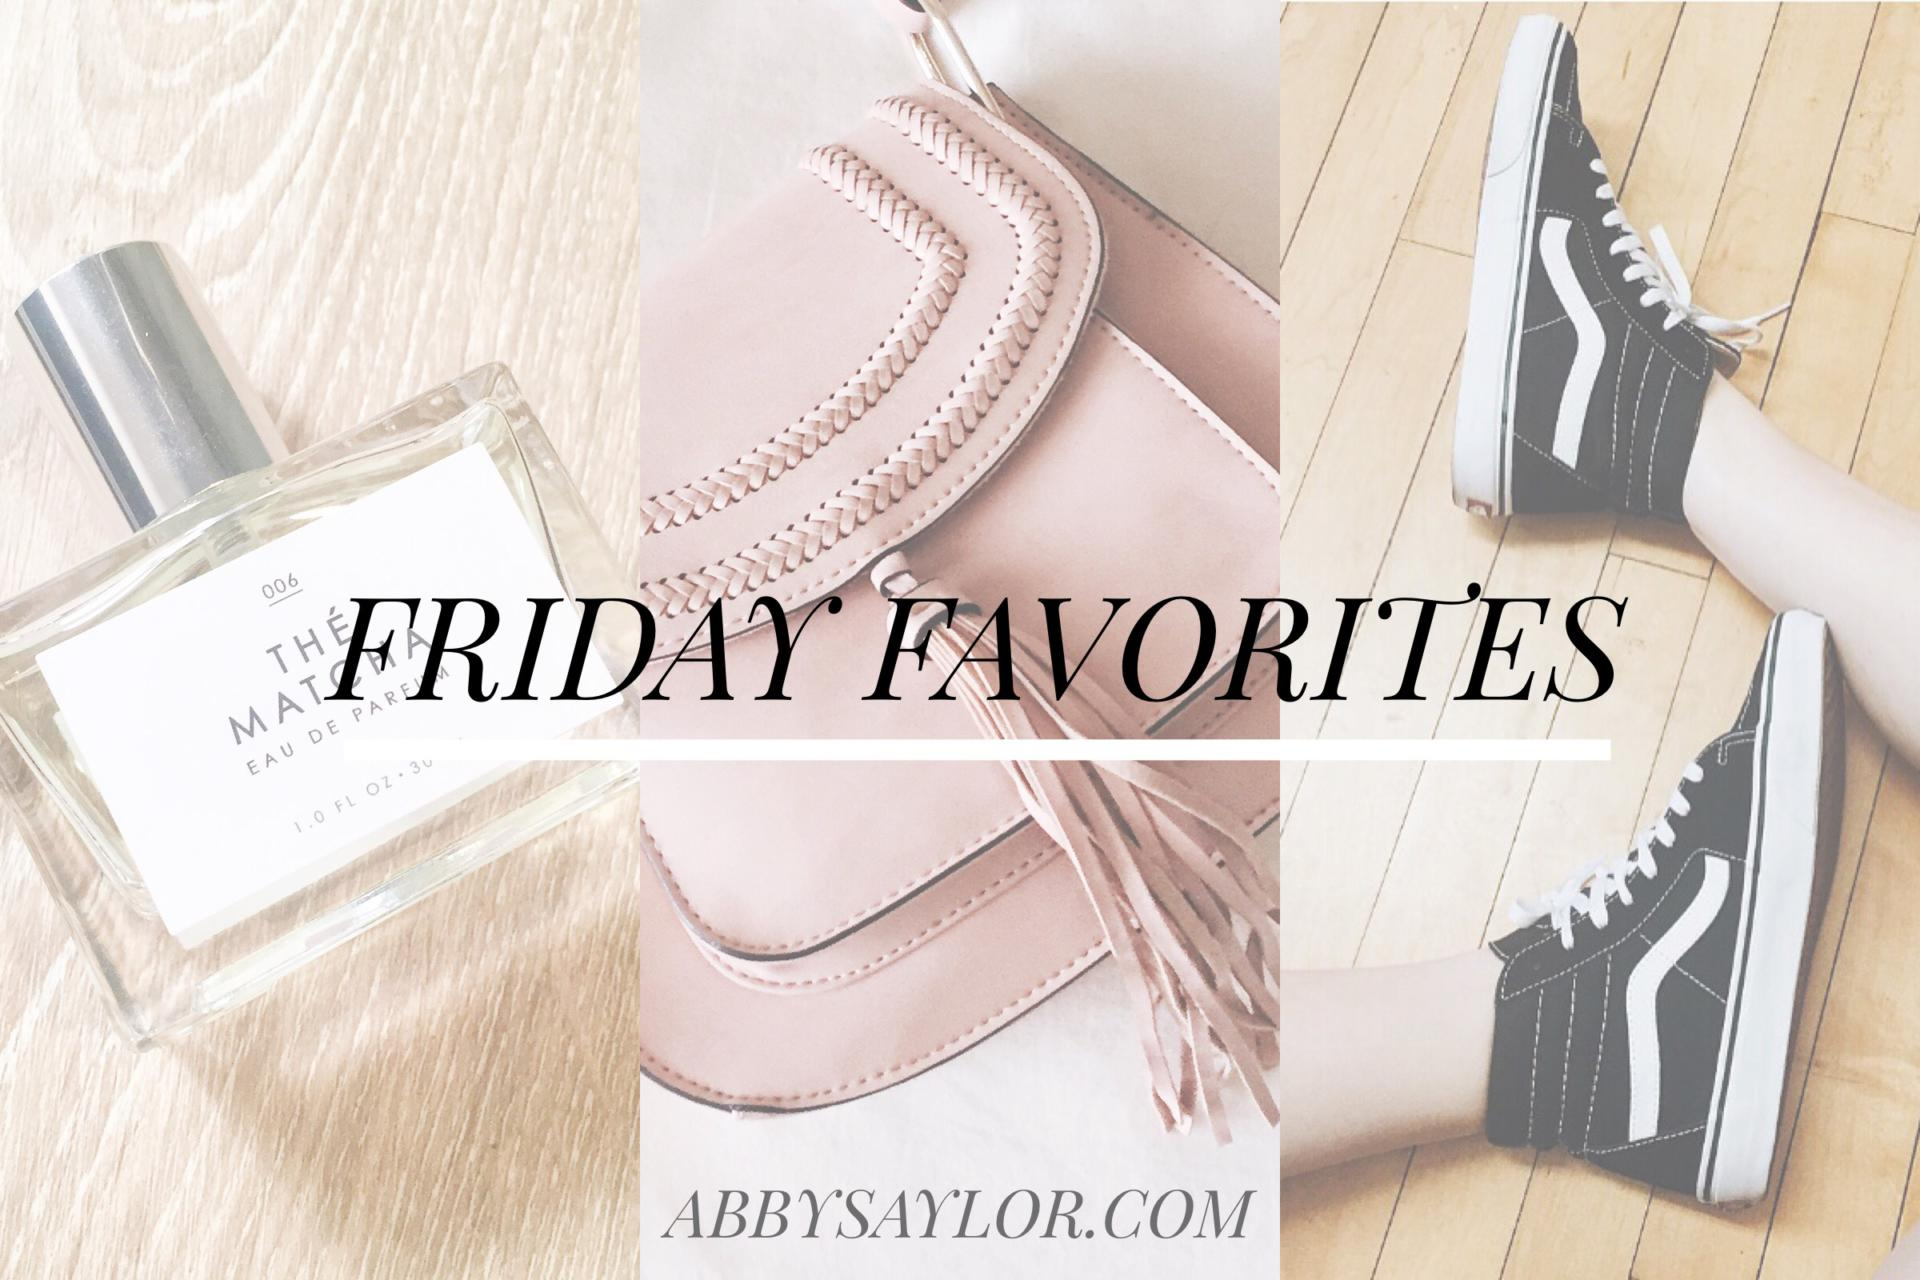 Friday Favorites 9 : Friday favorites abby saylor armbruster